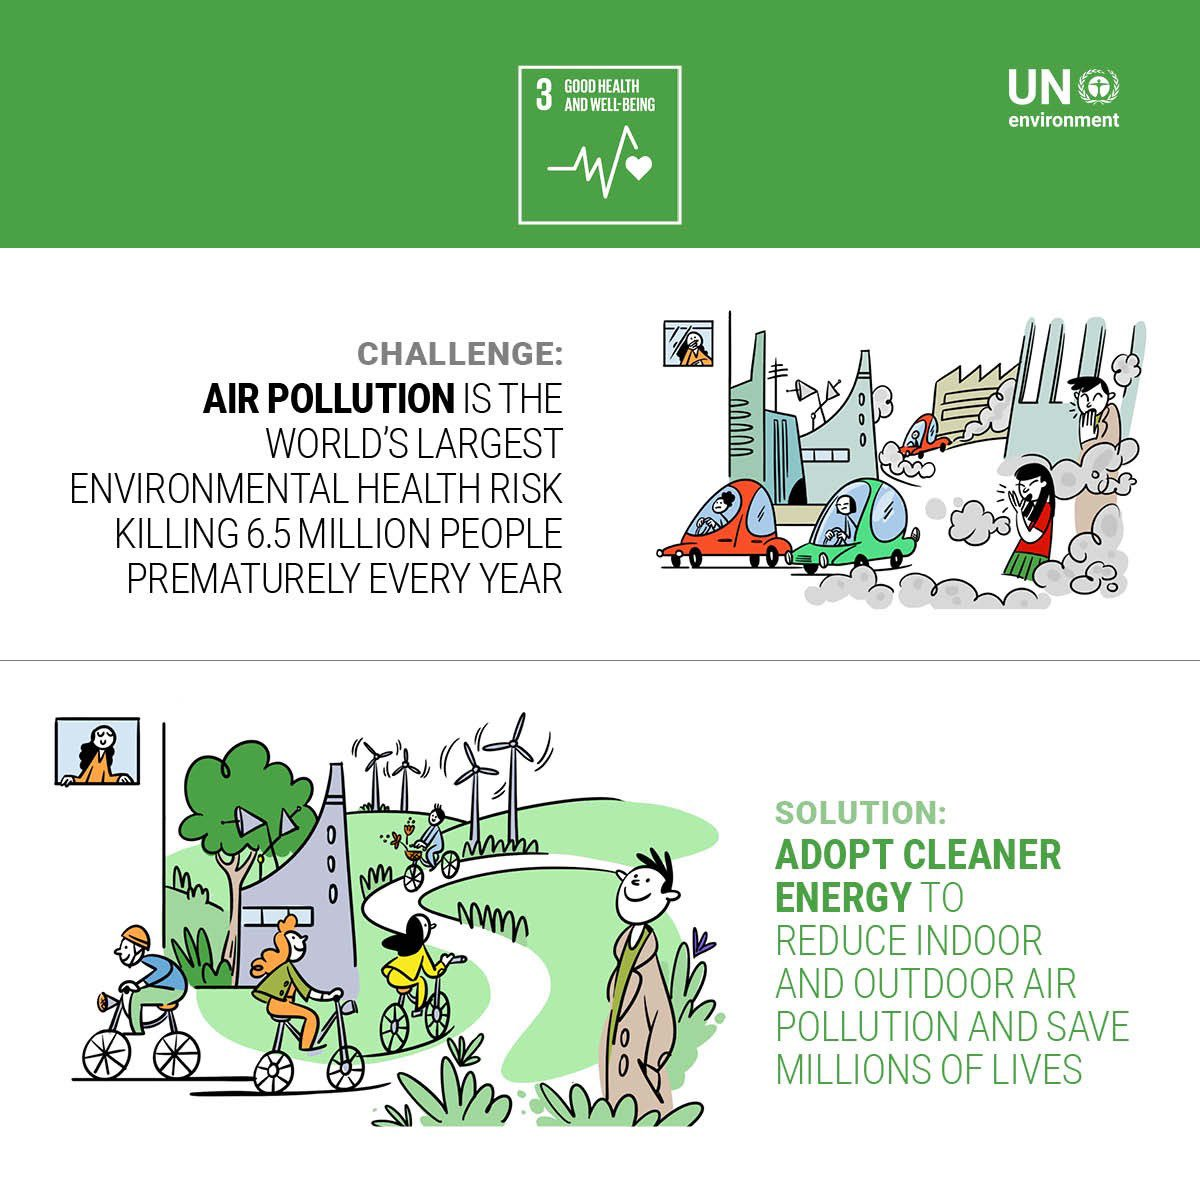 #BeatAirPollution   Our planet's greatest environmental health risk demands action.  With clean energy 🌞💨⚡️ we can work to save millions of lives & look forward to a greener future.  #GlobalGoals